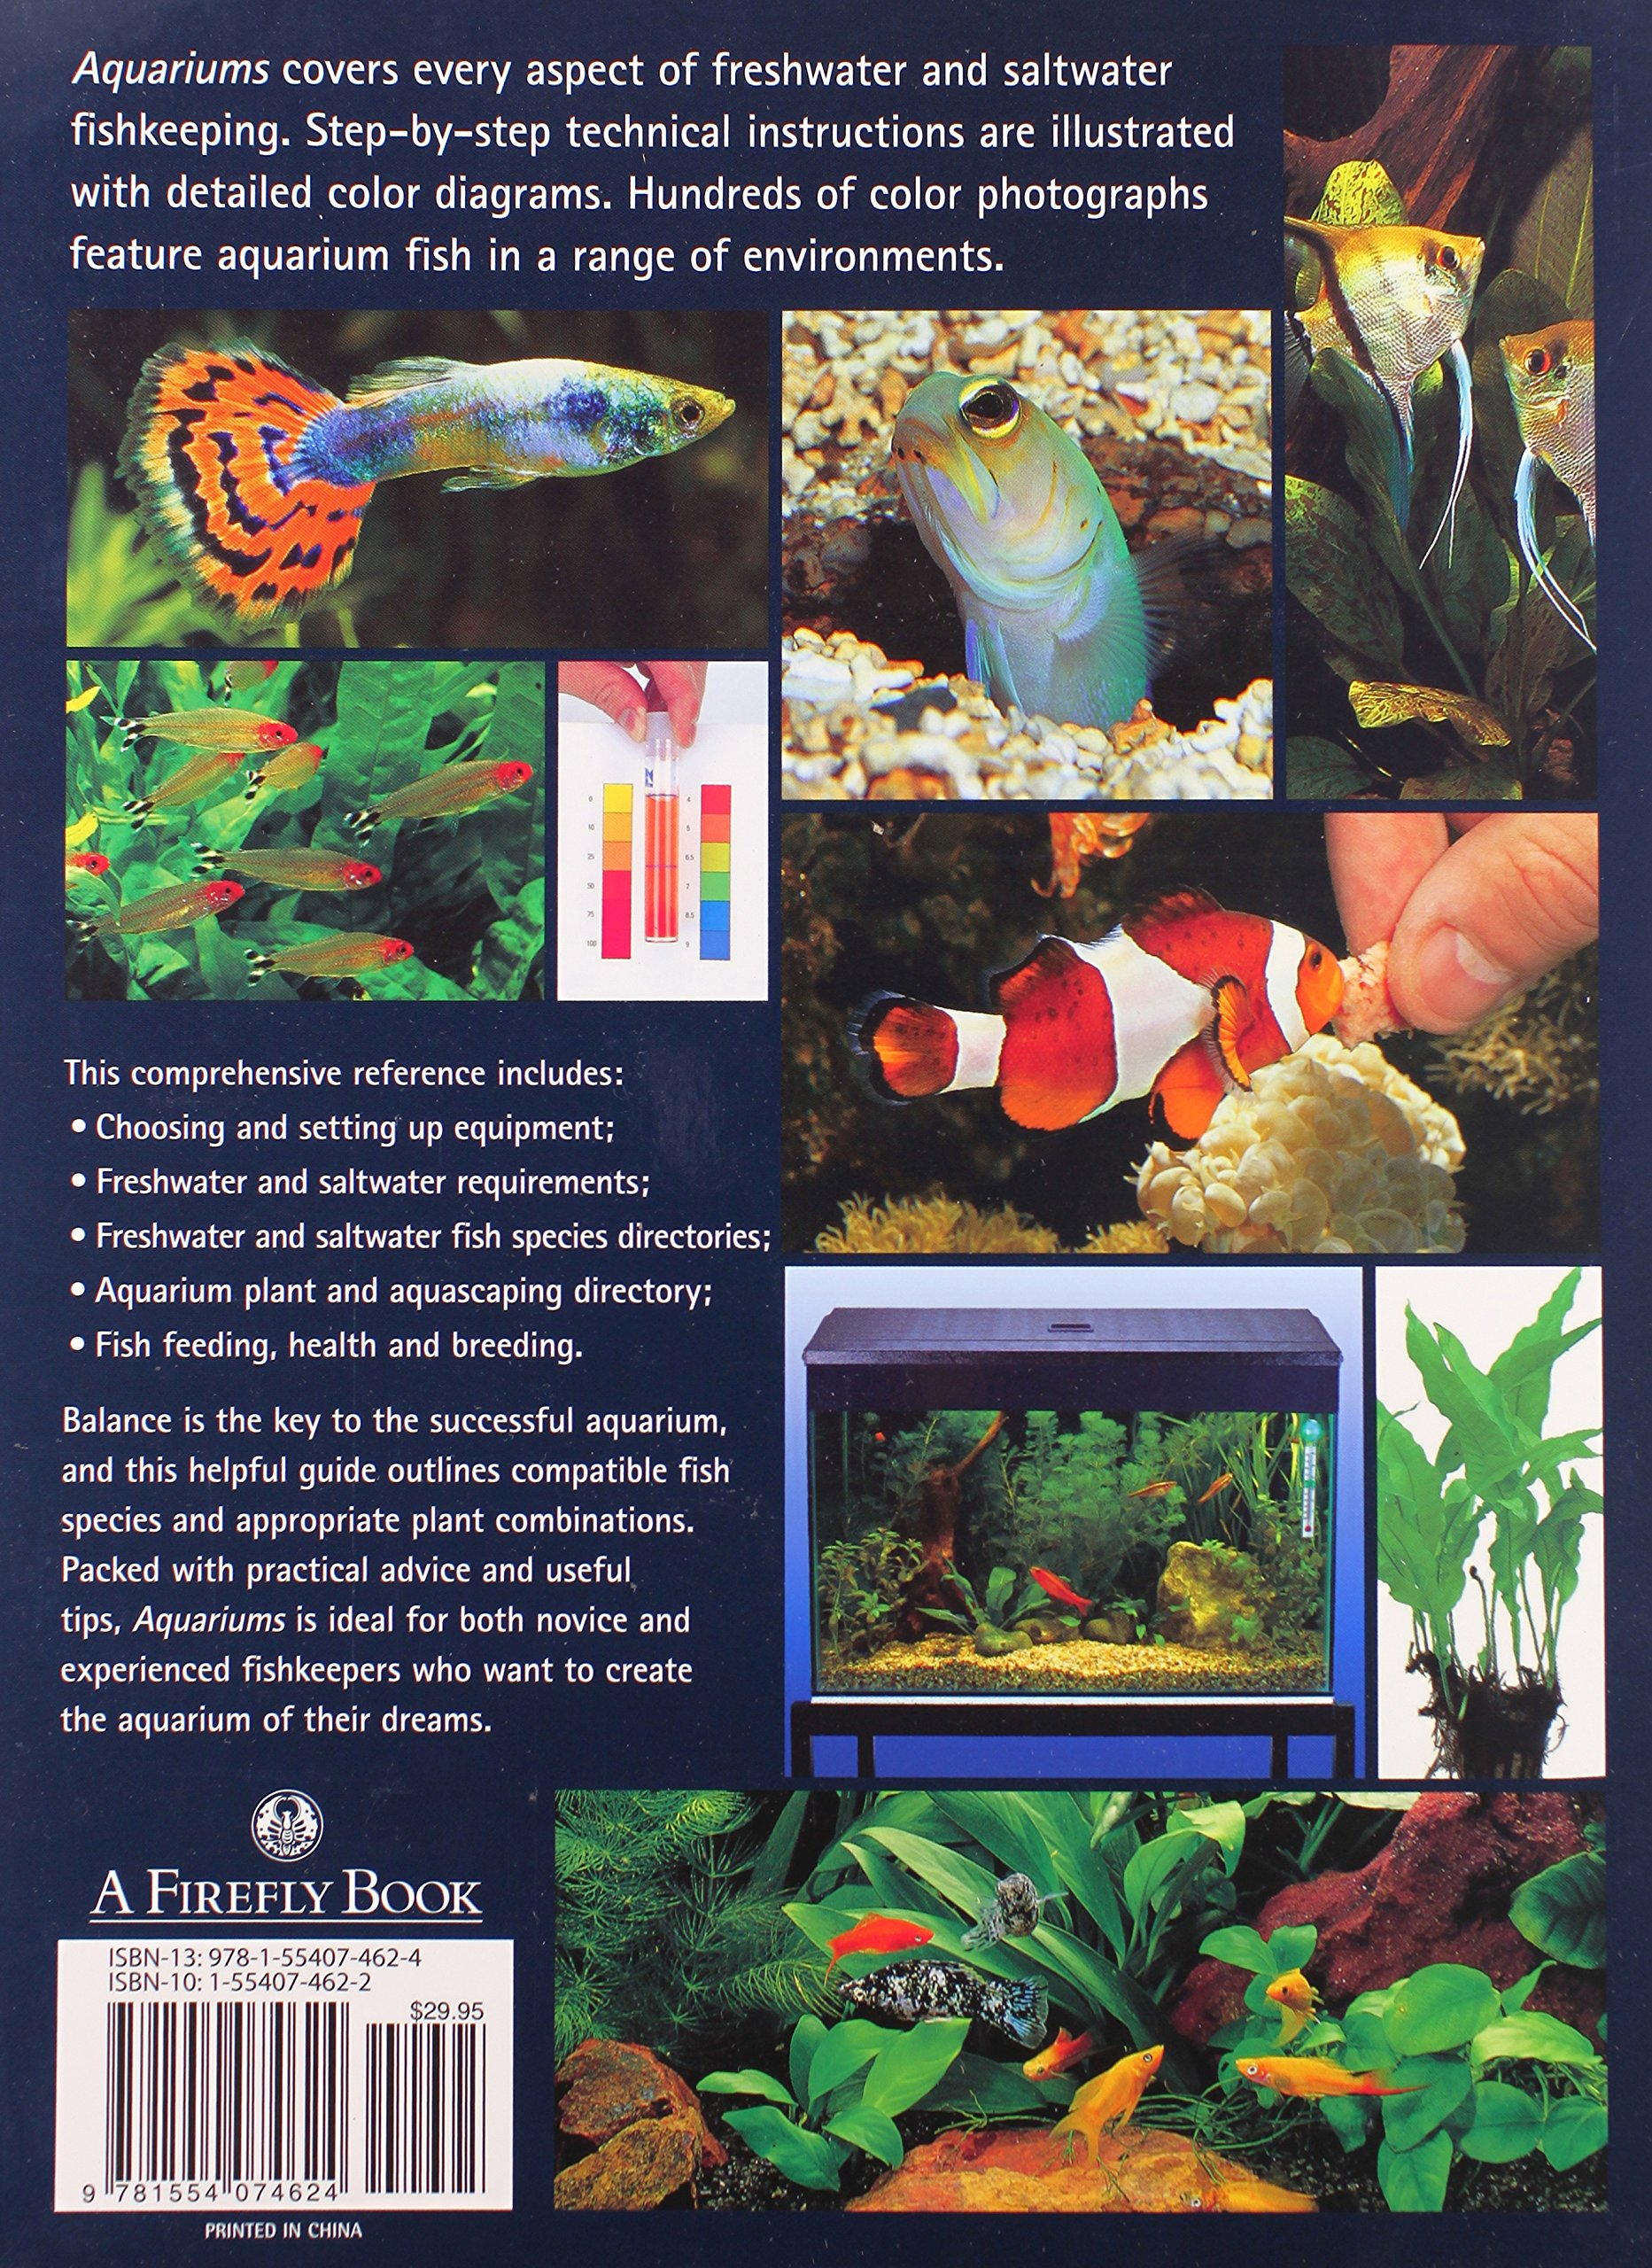 Fish aquarium guide - Aquariums The Complete Guide To Freshwater And Saltwater Aquariums Thierry Maitre Alain Christian Piednoir 9781554074624 Amazon Com Books